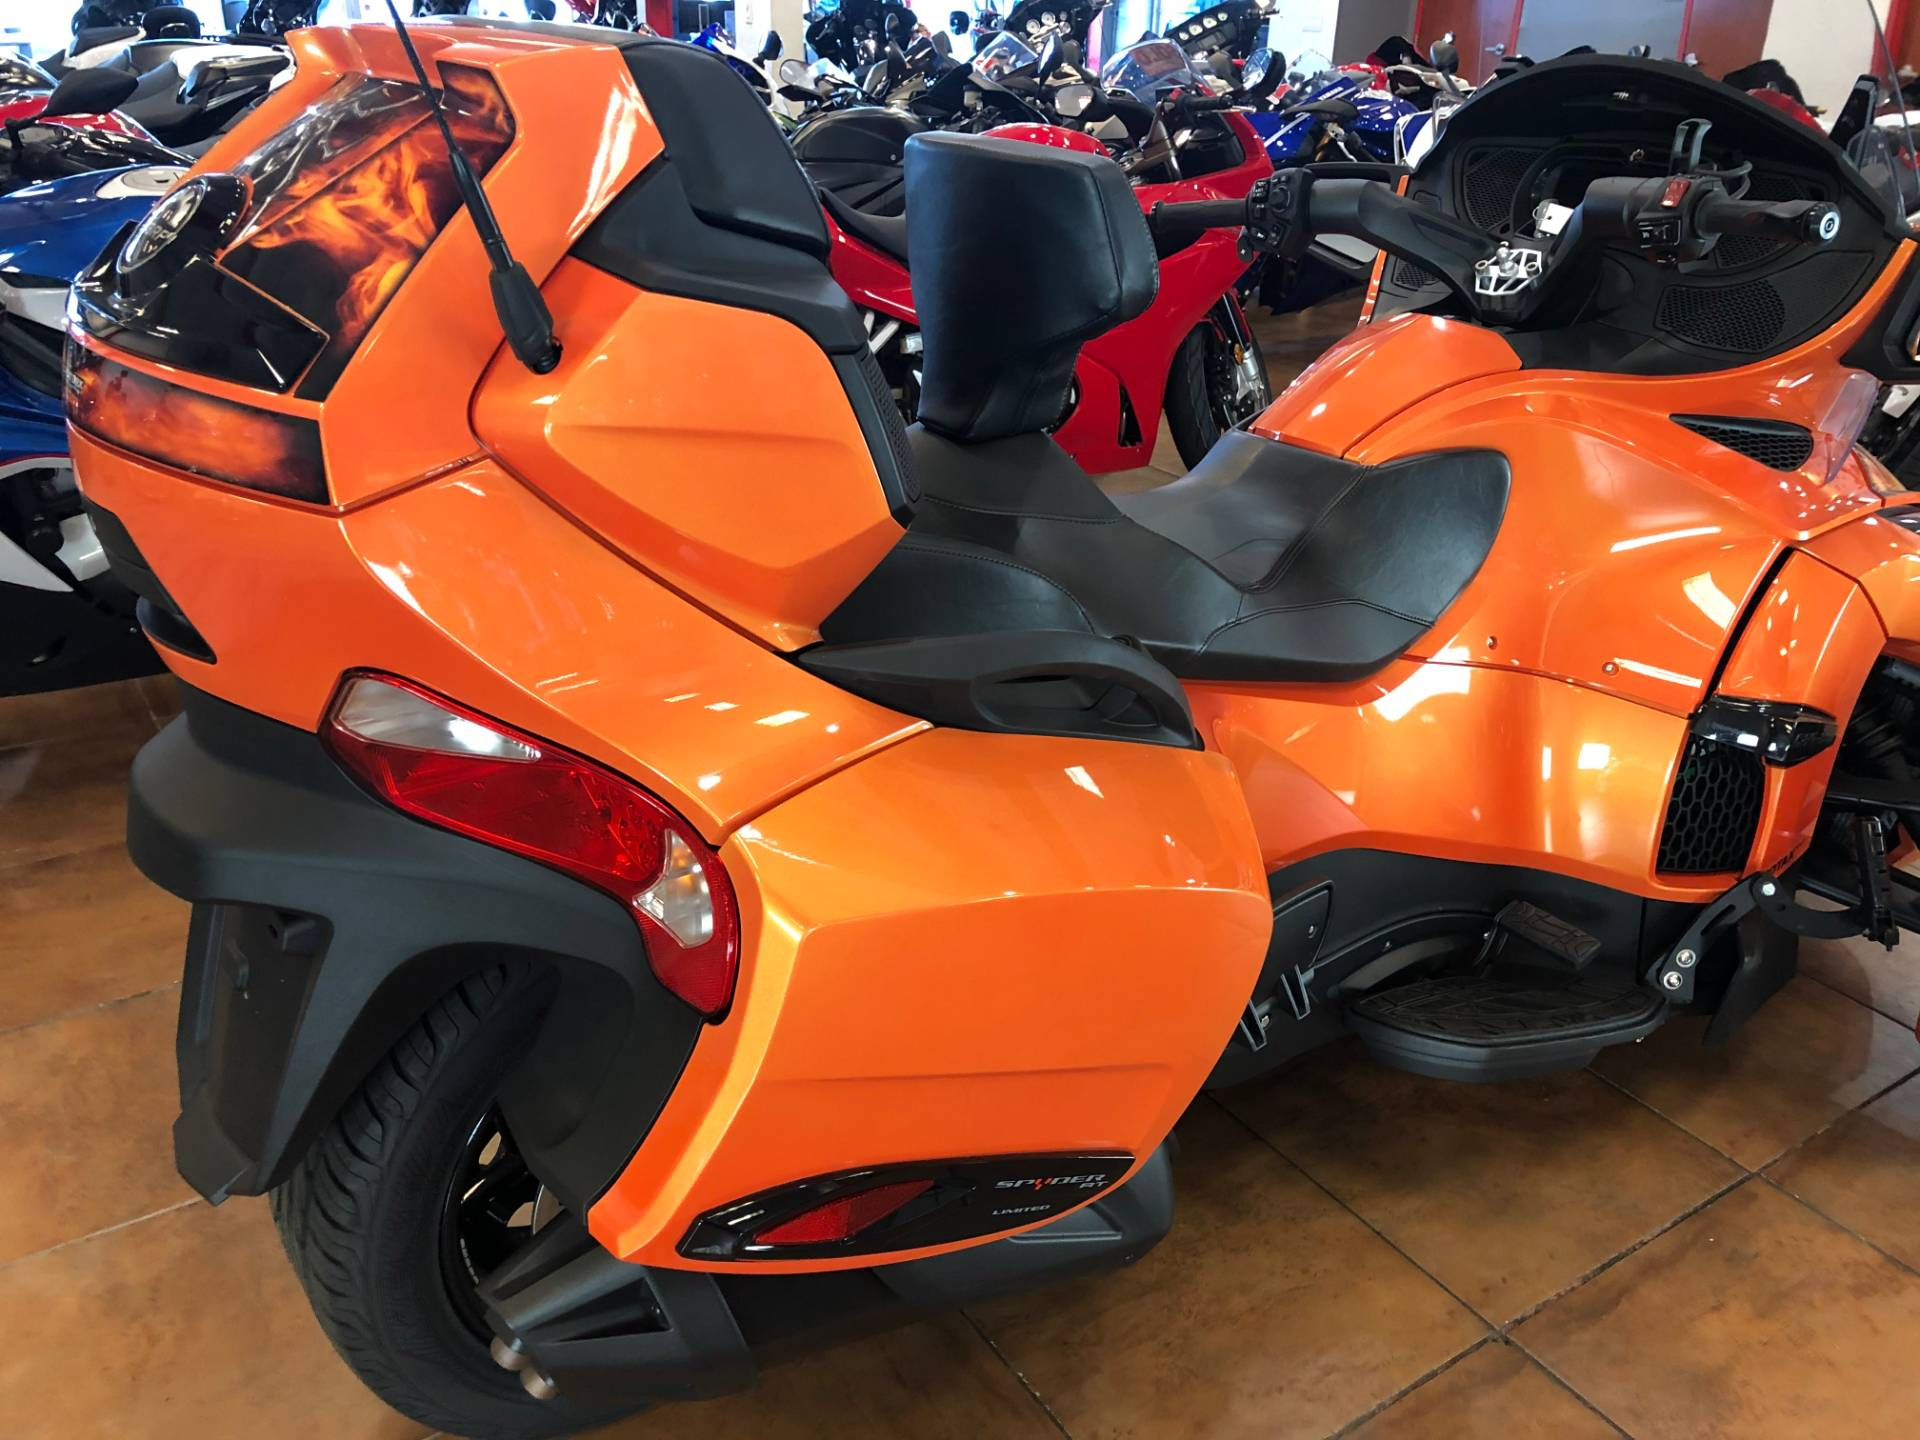 2019 Can-Am Spyder RT Limited in Pinellas Park, Florida - Photo 7